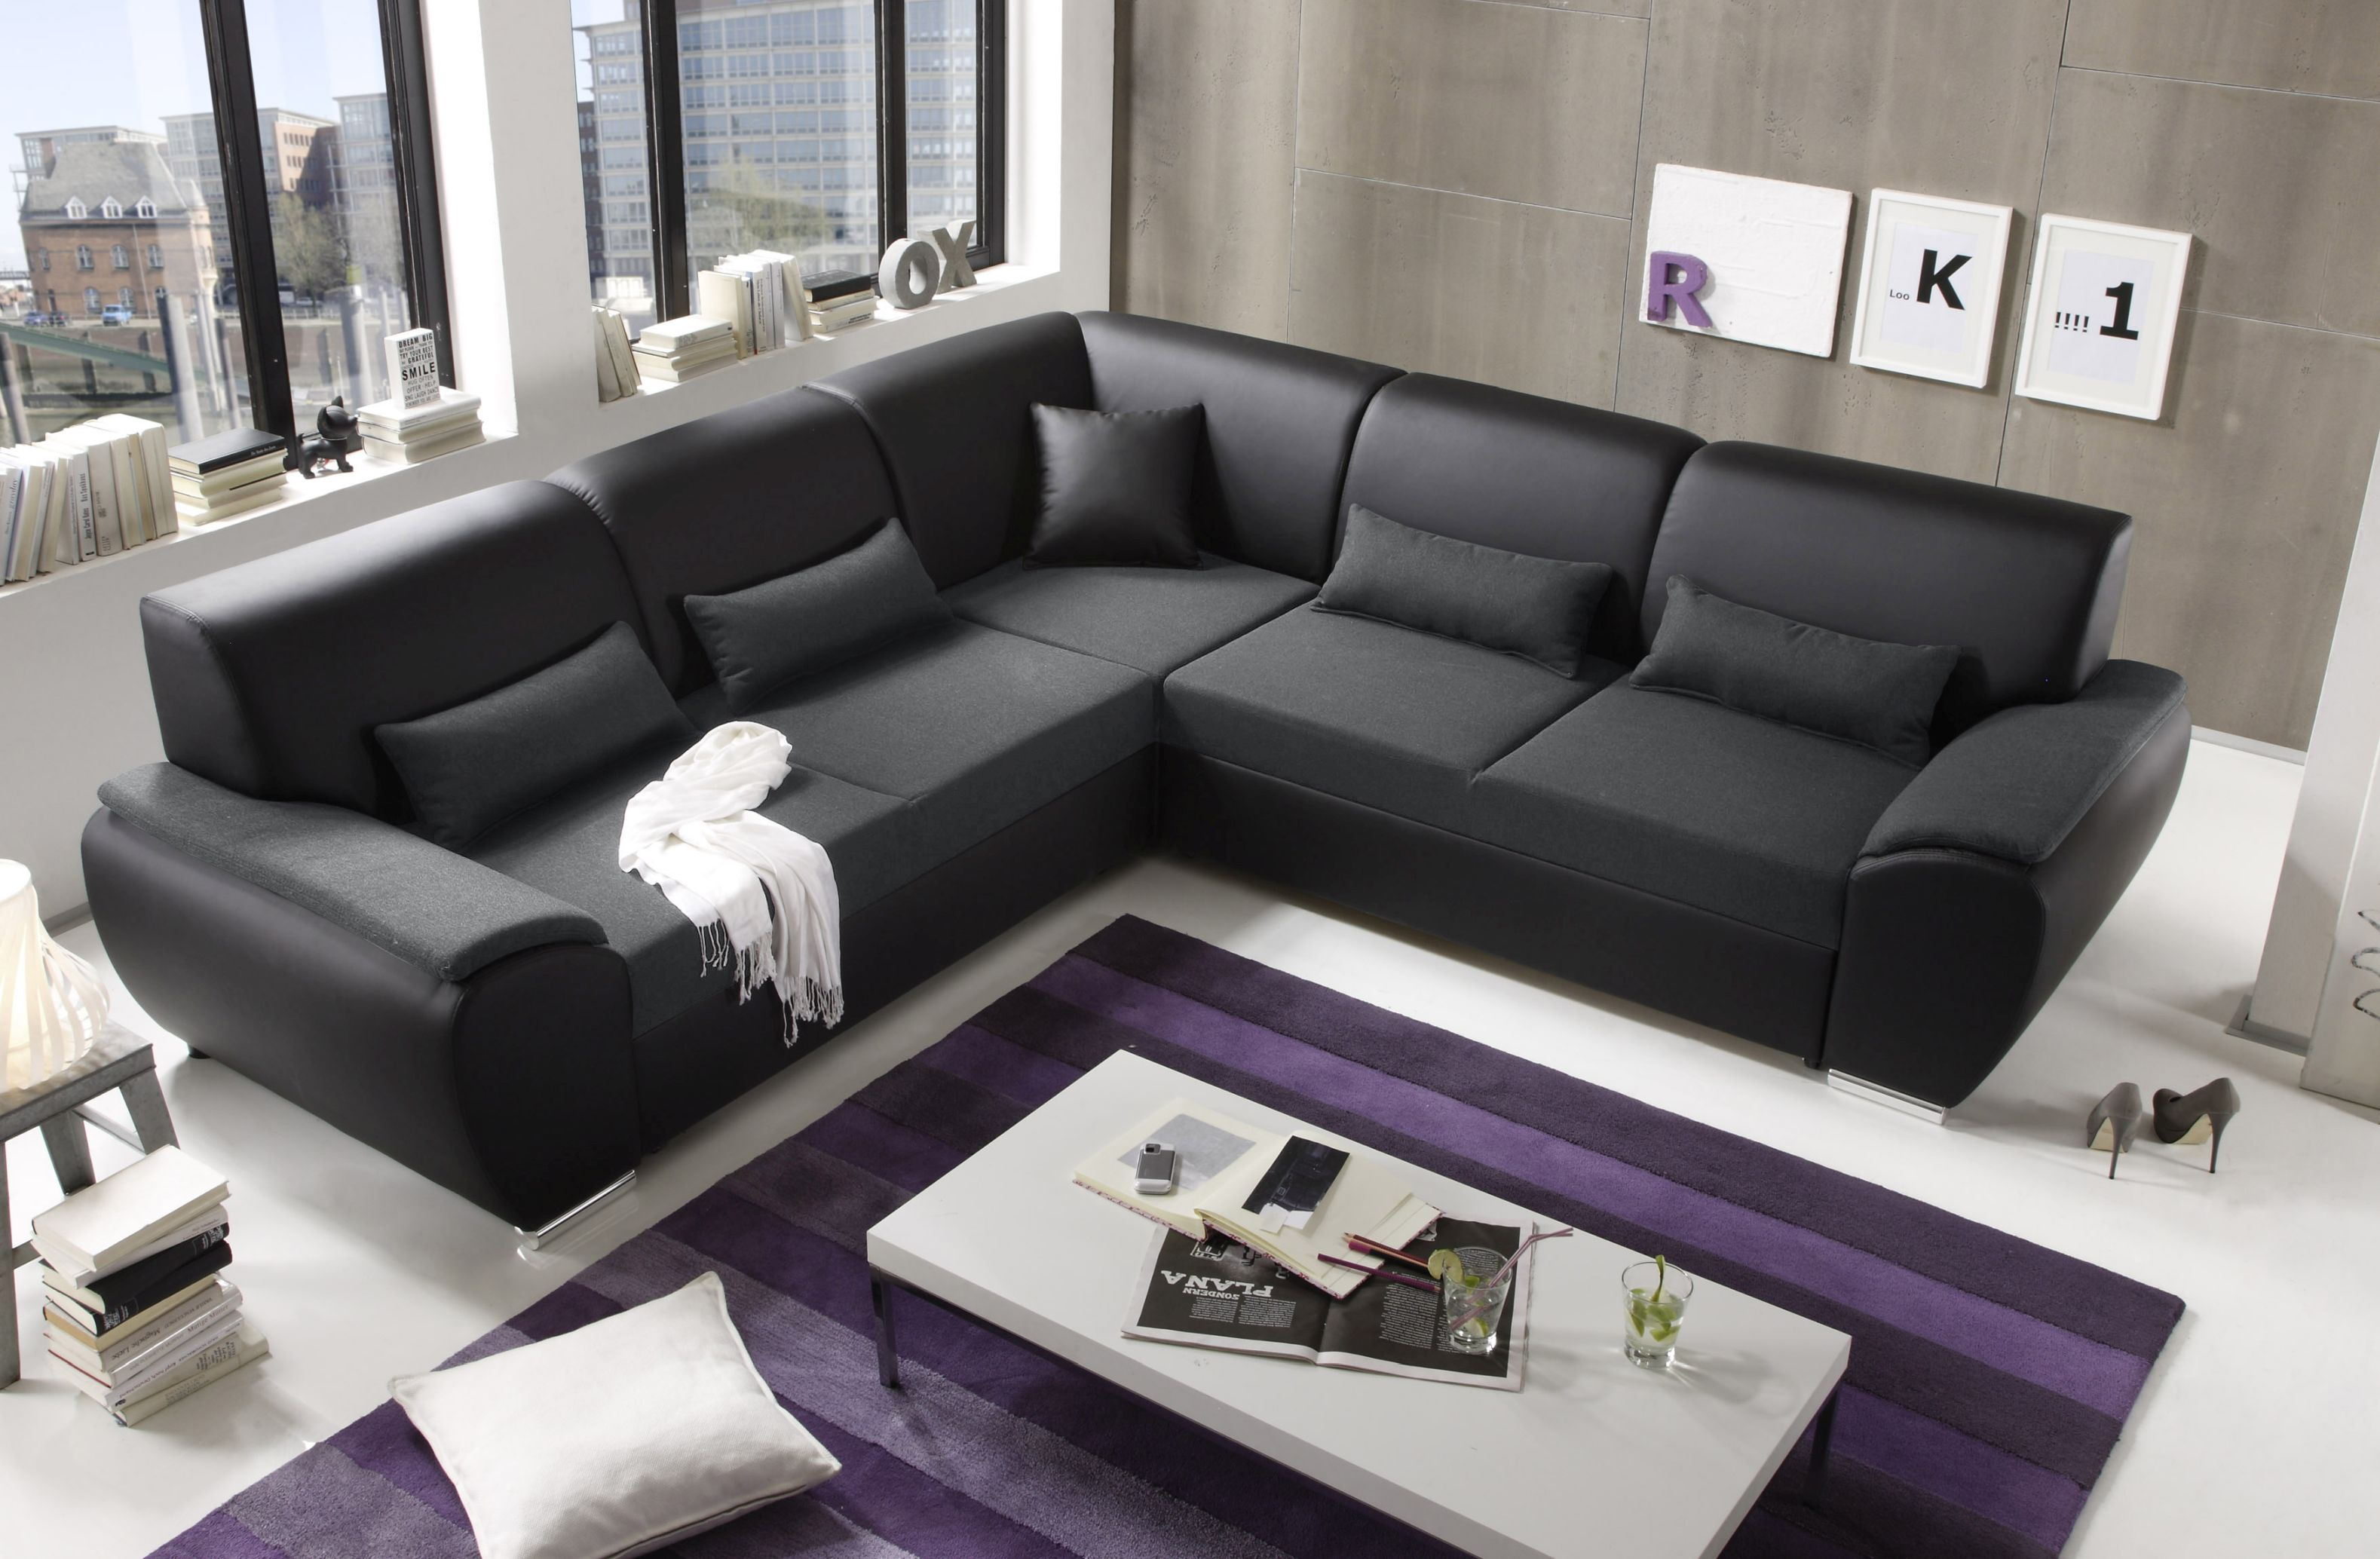 kombiecke antara couch schlafcouch funktionssofa. Black Bedroom Furniture Sets. Home Design Ideas